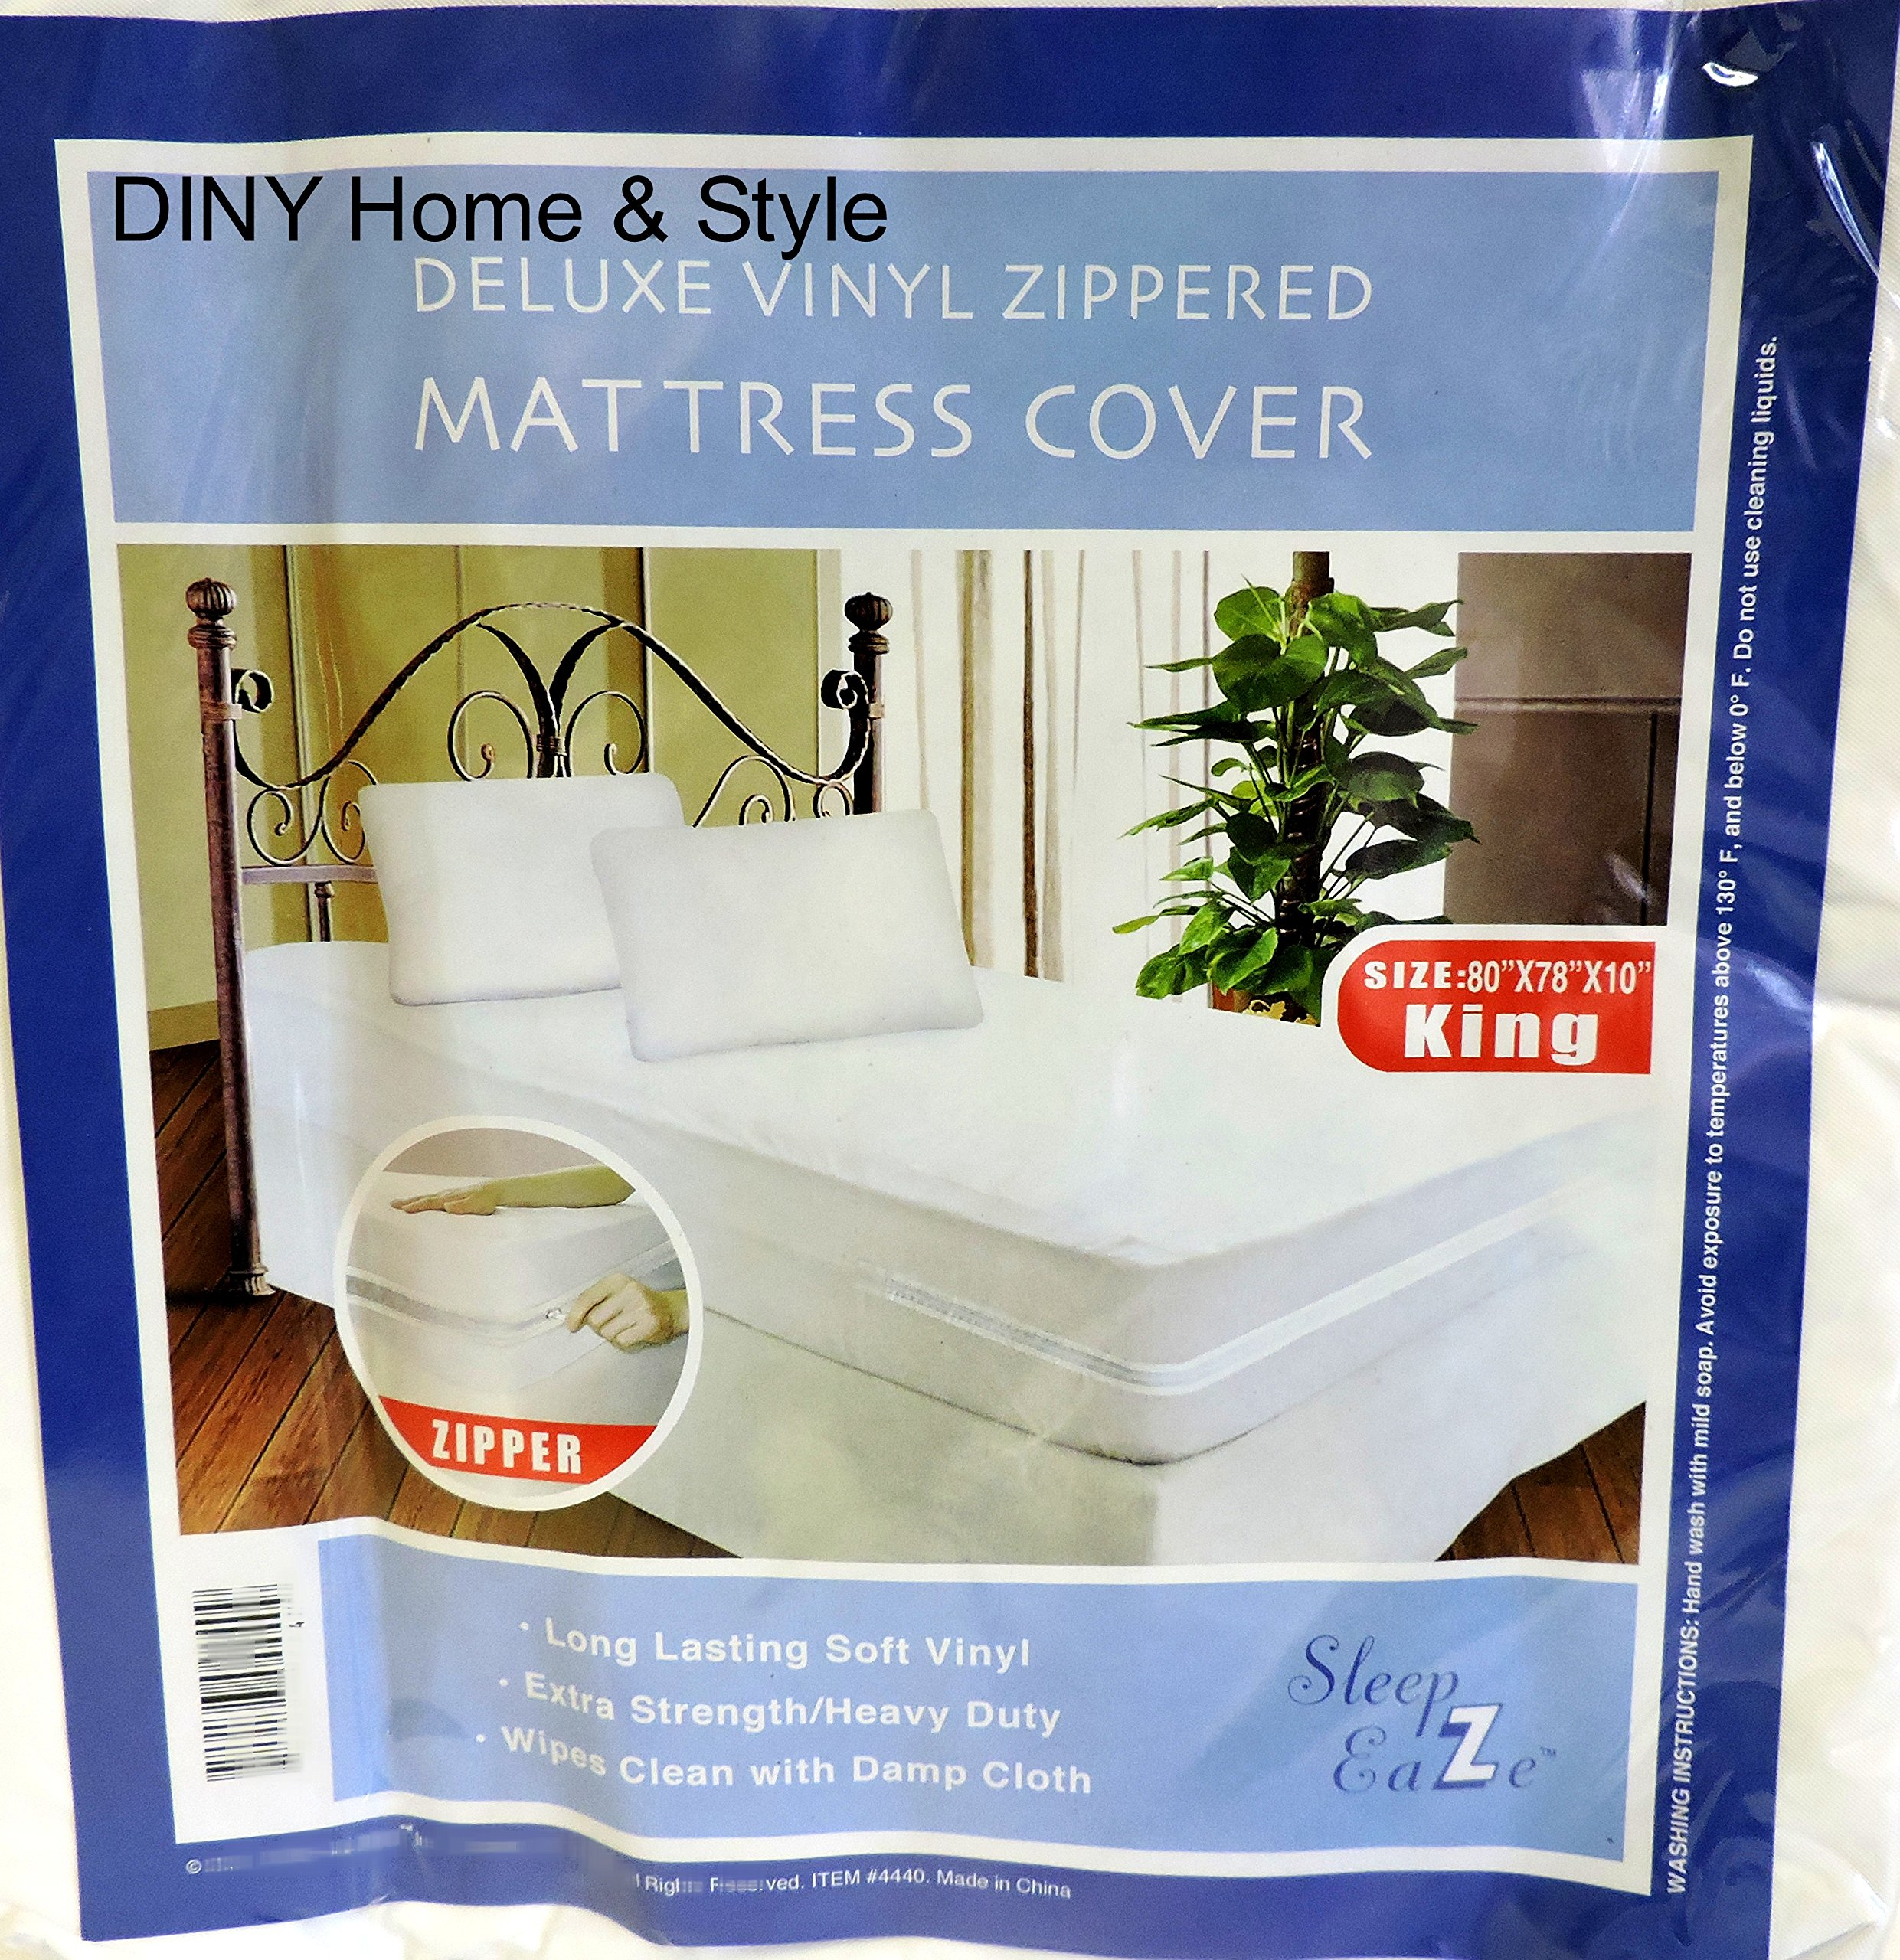 King Size Zippered Mattress Cover Vinyl Keeps Out Bed Bugs & Dust Mites Water Resistant Protector 10'' Wide 80'' X 78'' By Diny Home & Style